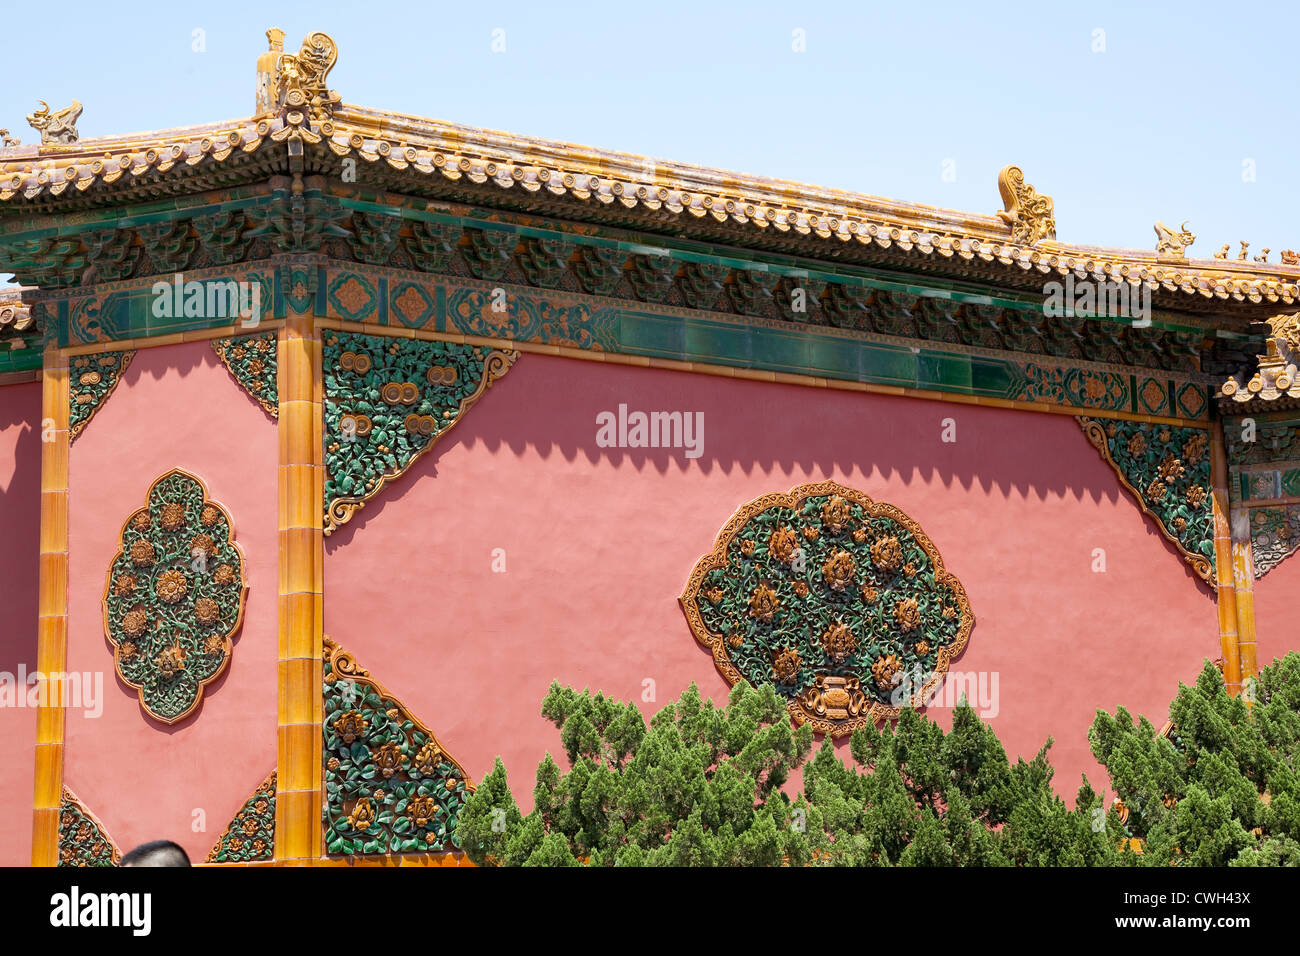 ceramic decorations in the Forbidden City - Stock Image